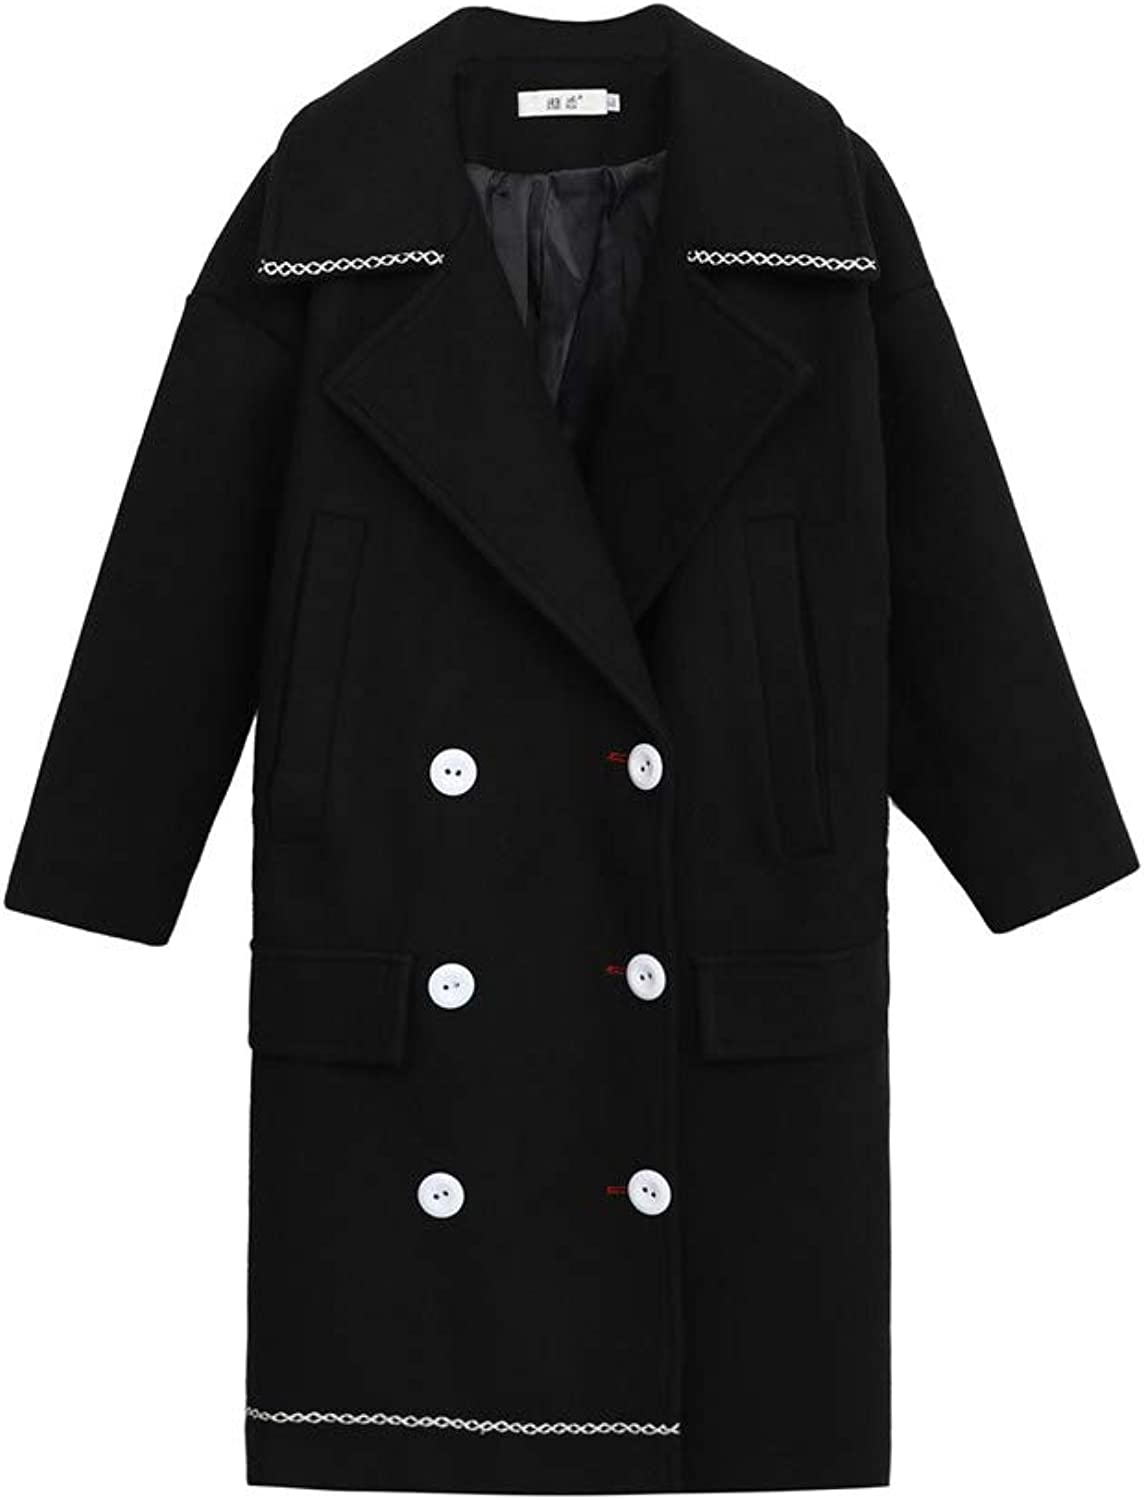 SOLAIGI Winter Womens Large Size Overcoat Lapel Double Breasted Long Coat Greatcoat Ladies Outerwear